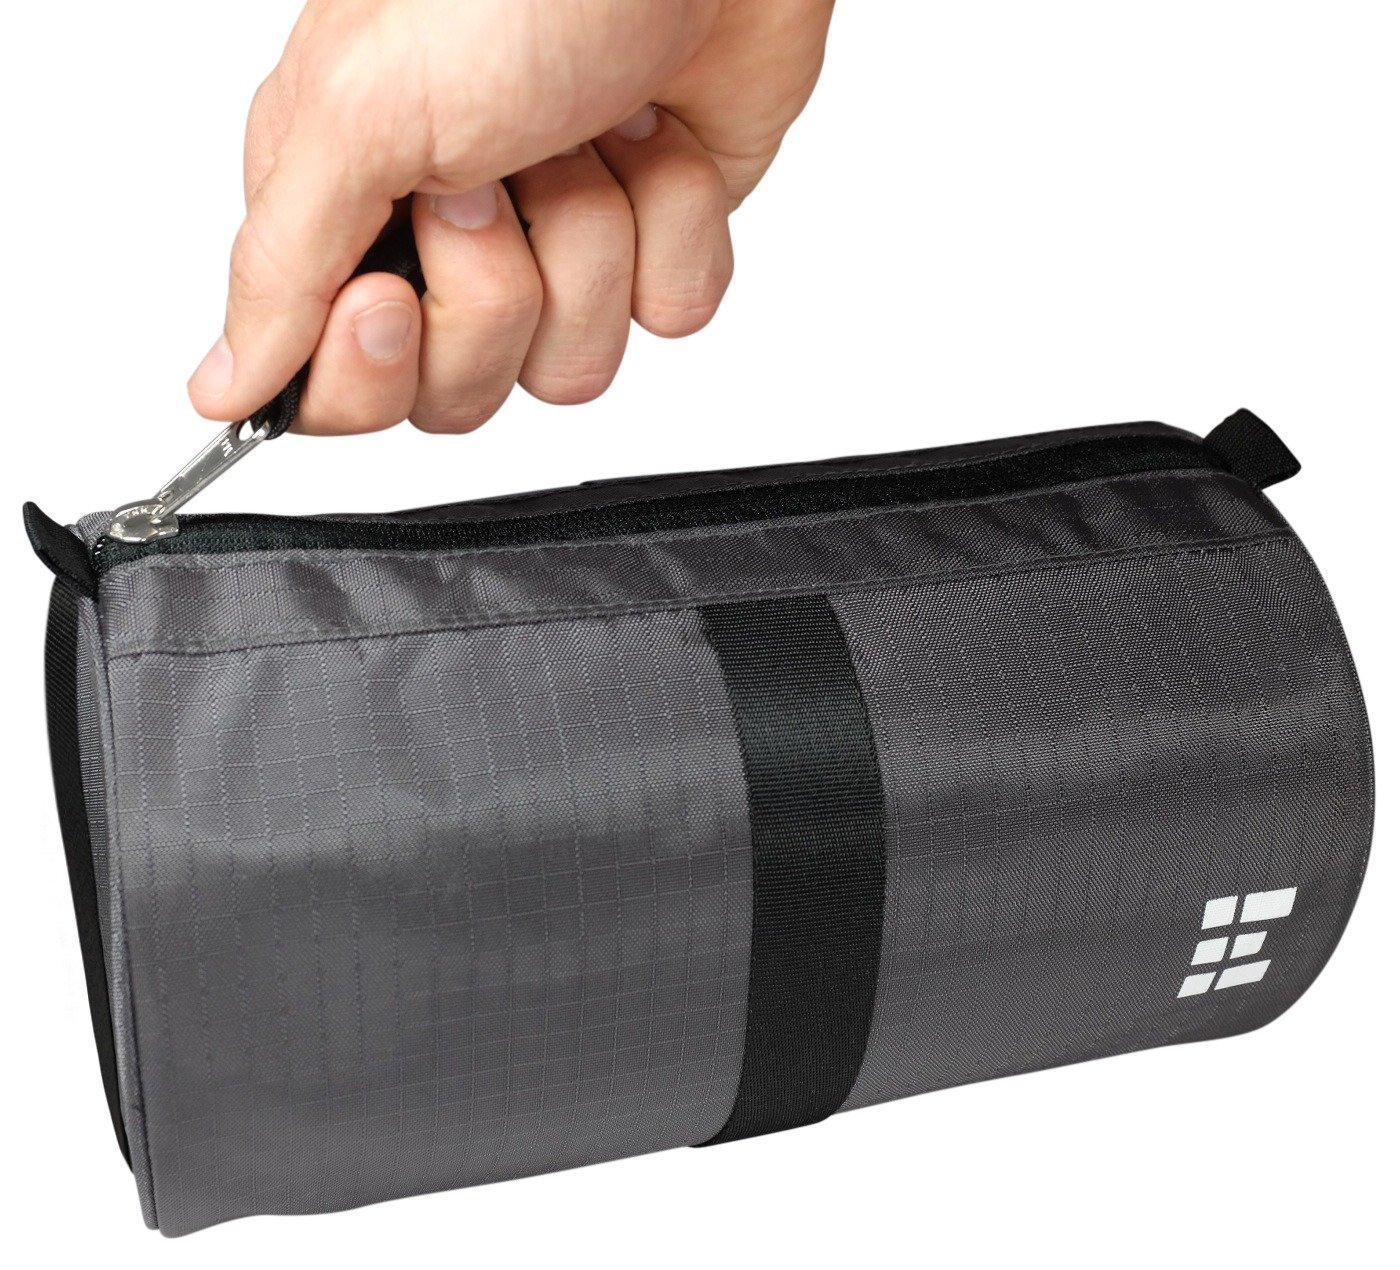 Zero Grid Travel Dopp Bag - Toiletry Kit for Men, Shadow